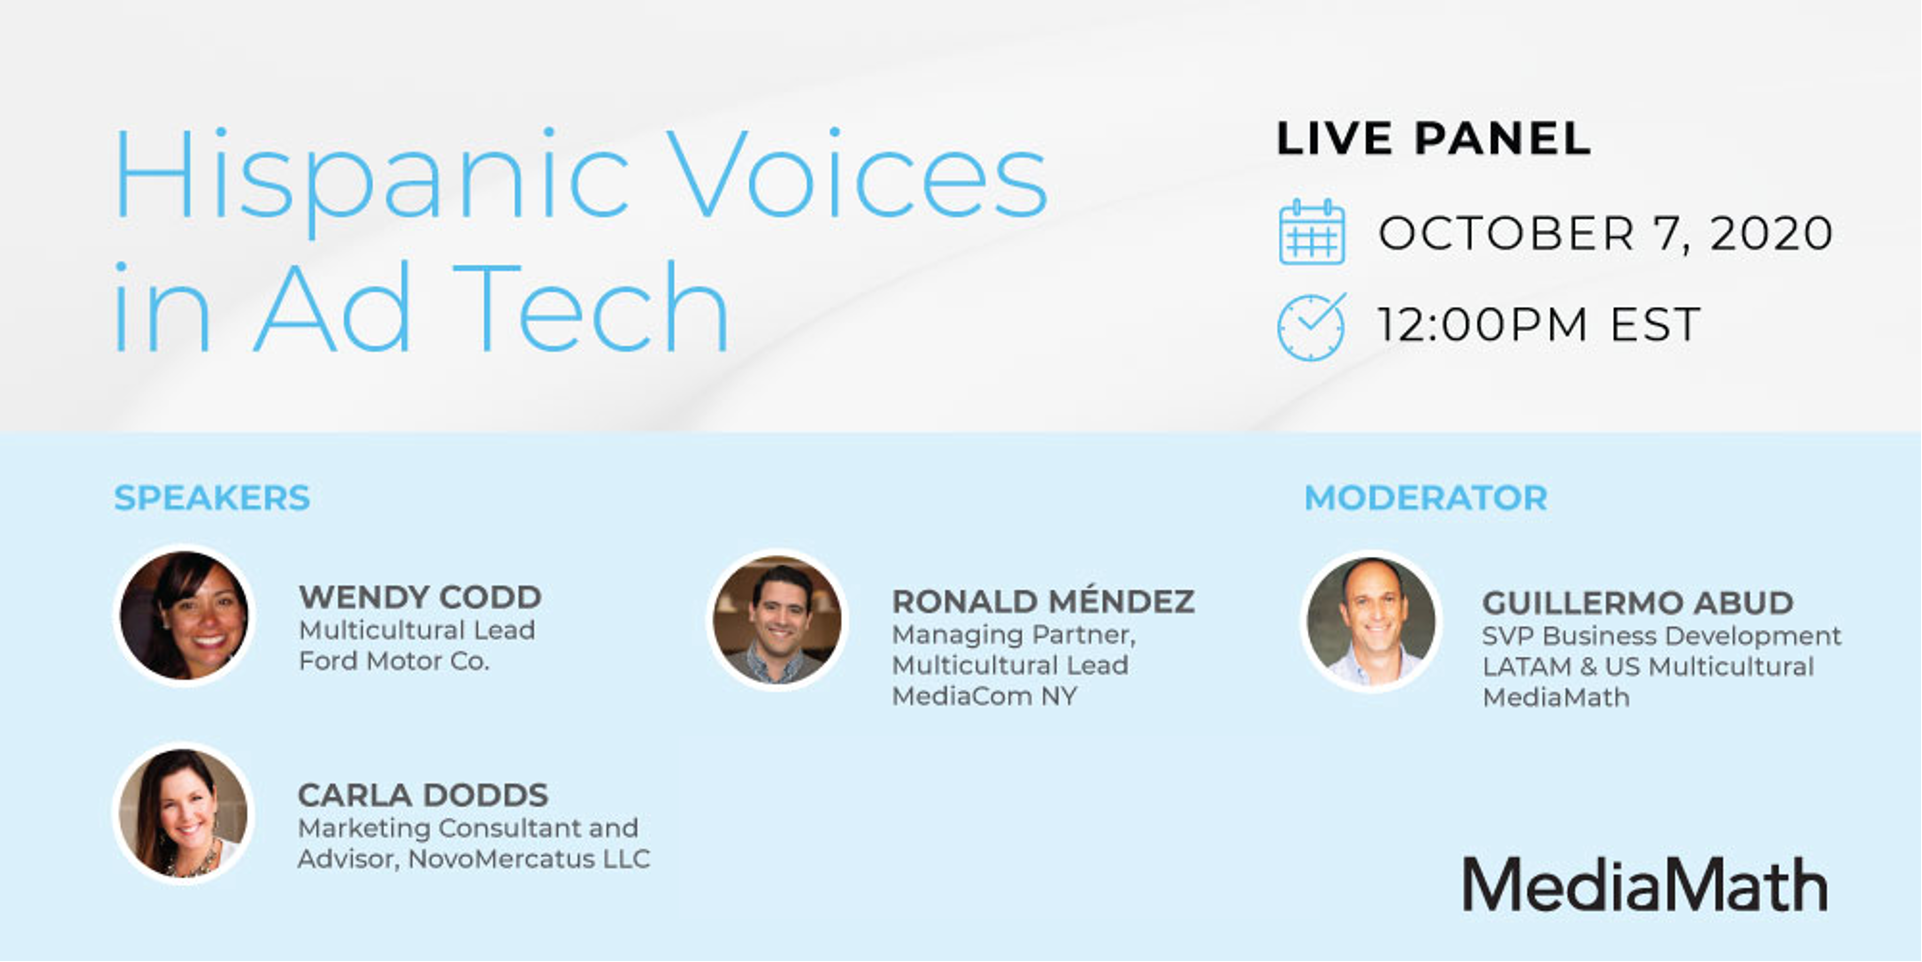 Hispanic Voices in Ad Tech